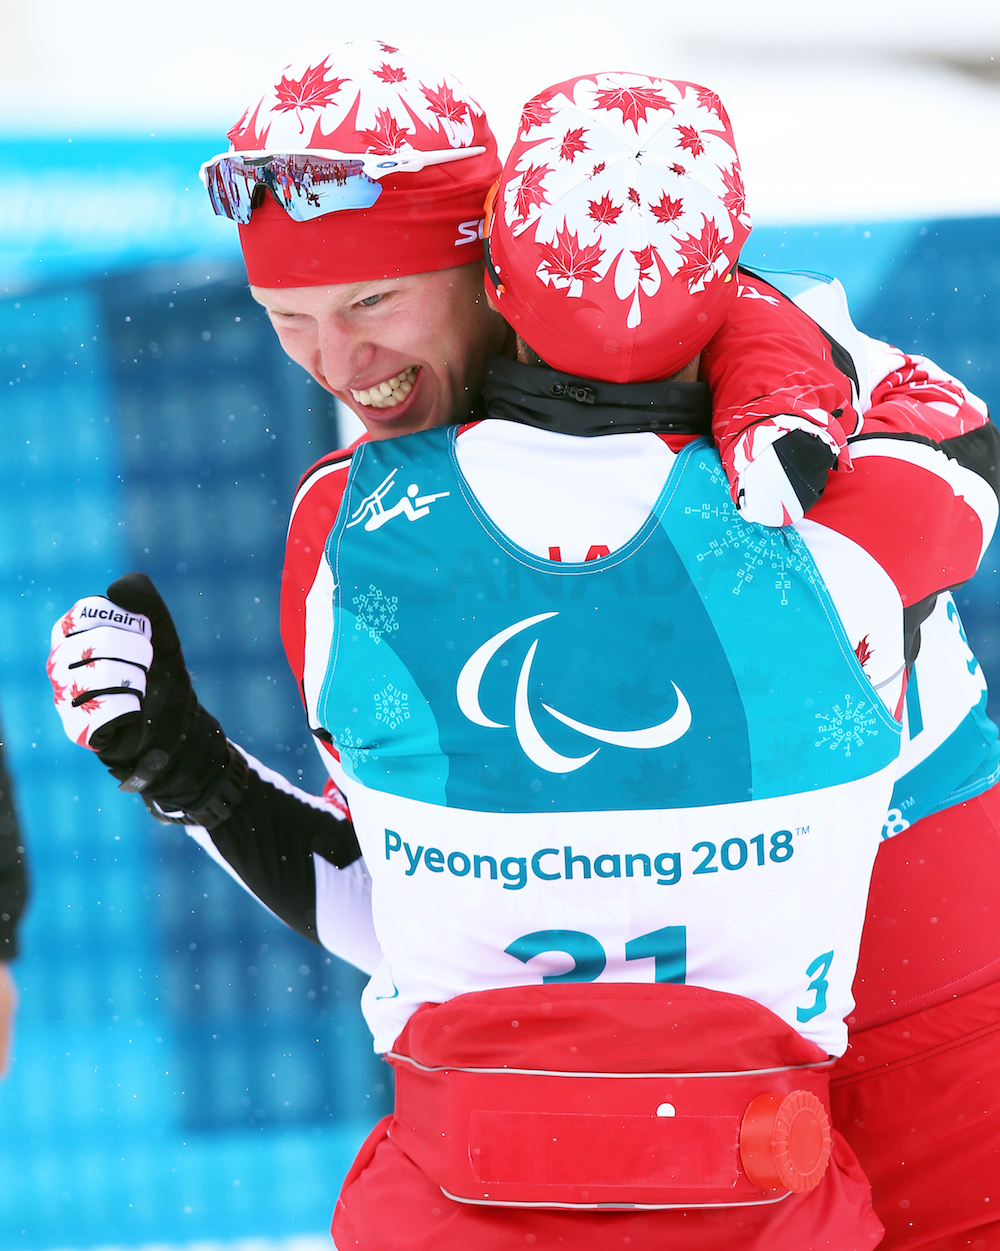 https://fasterskier.com/wp-content/blogs.dir/1/files/2018/03/PyeongChang-Mark-Arendz-Biathlon-gold-17mar2018163434.jpg